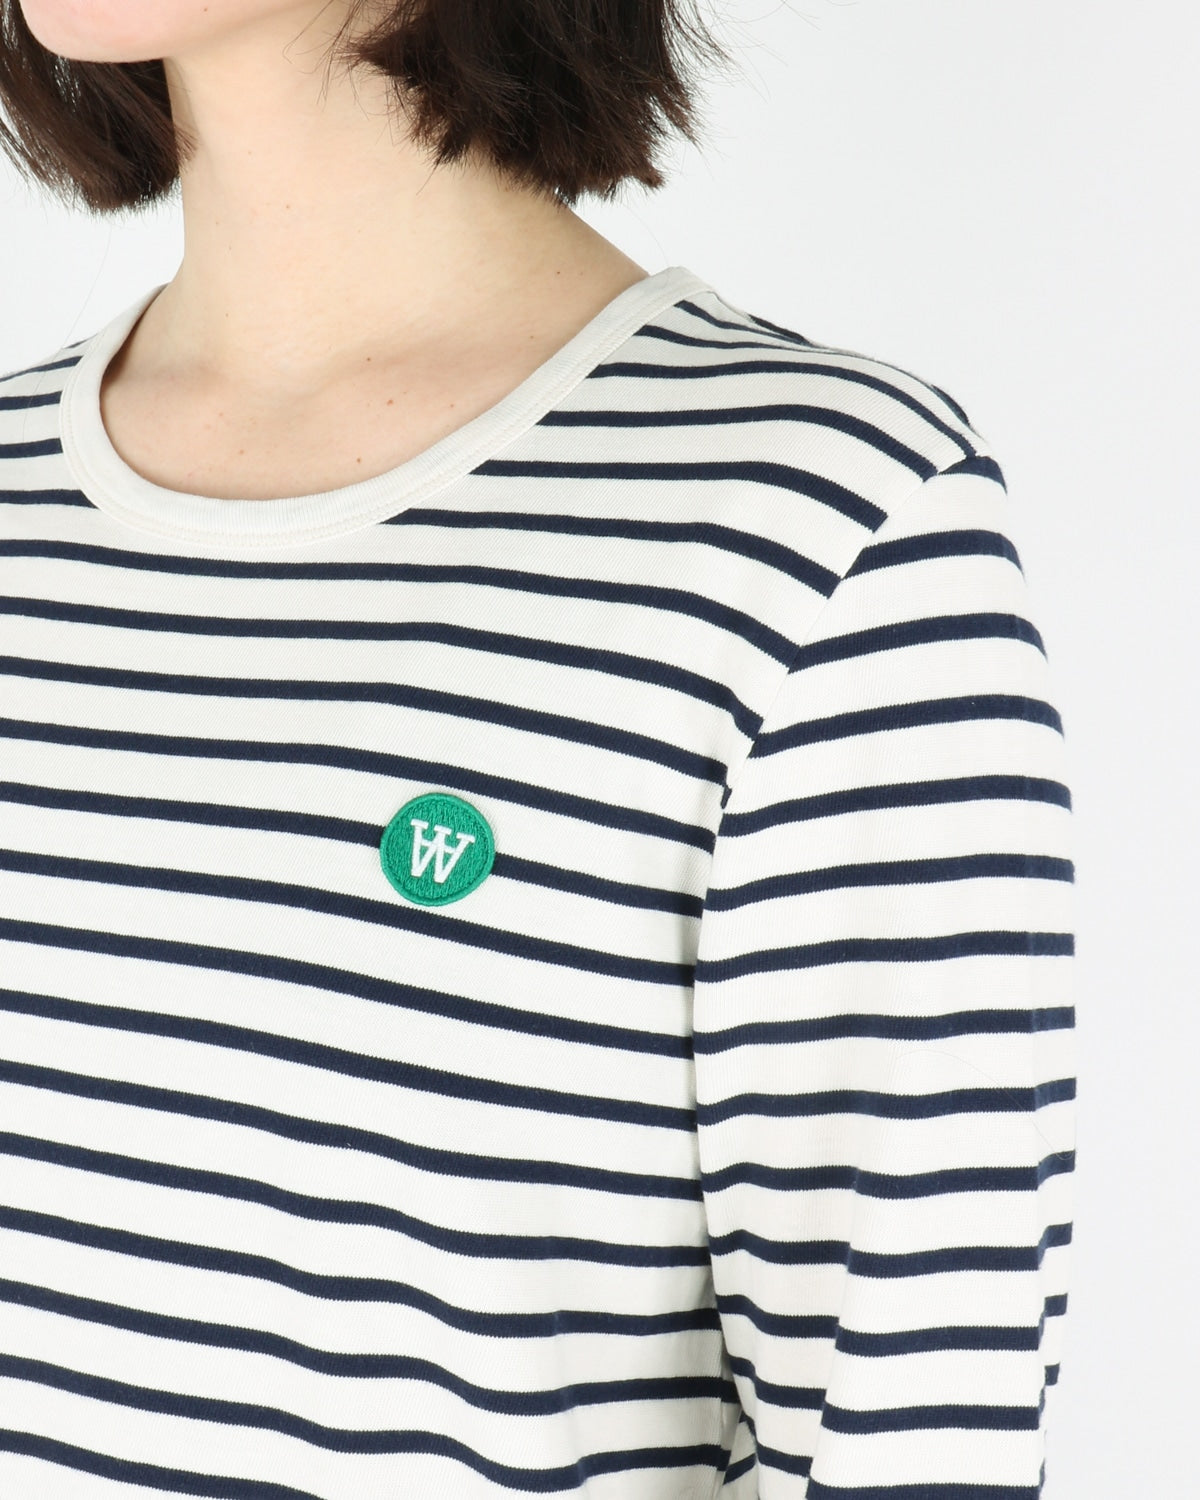 wood wood_moa longsleeve_offwhite navy stripes_view_3_3